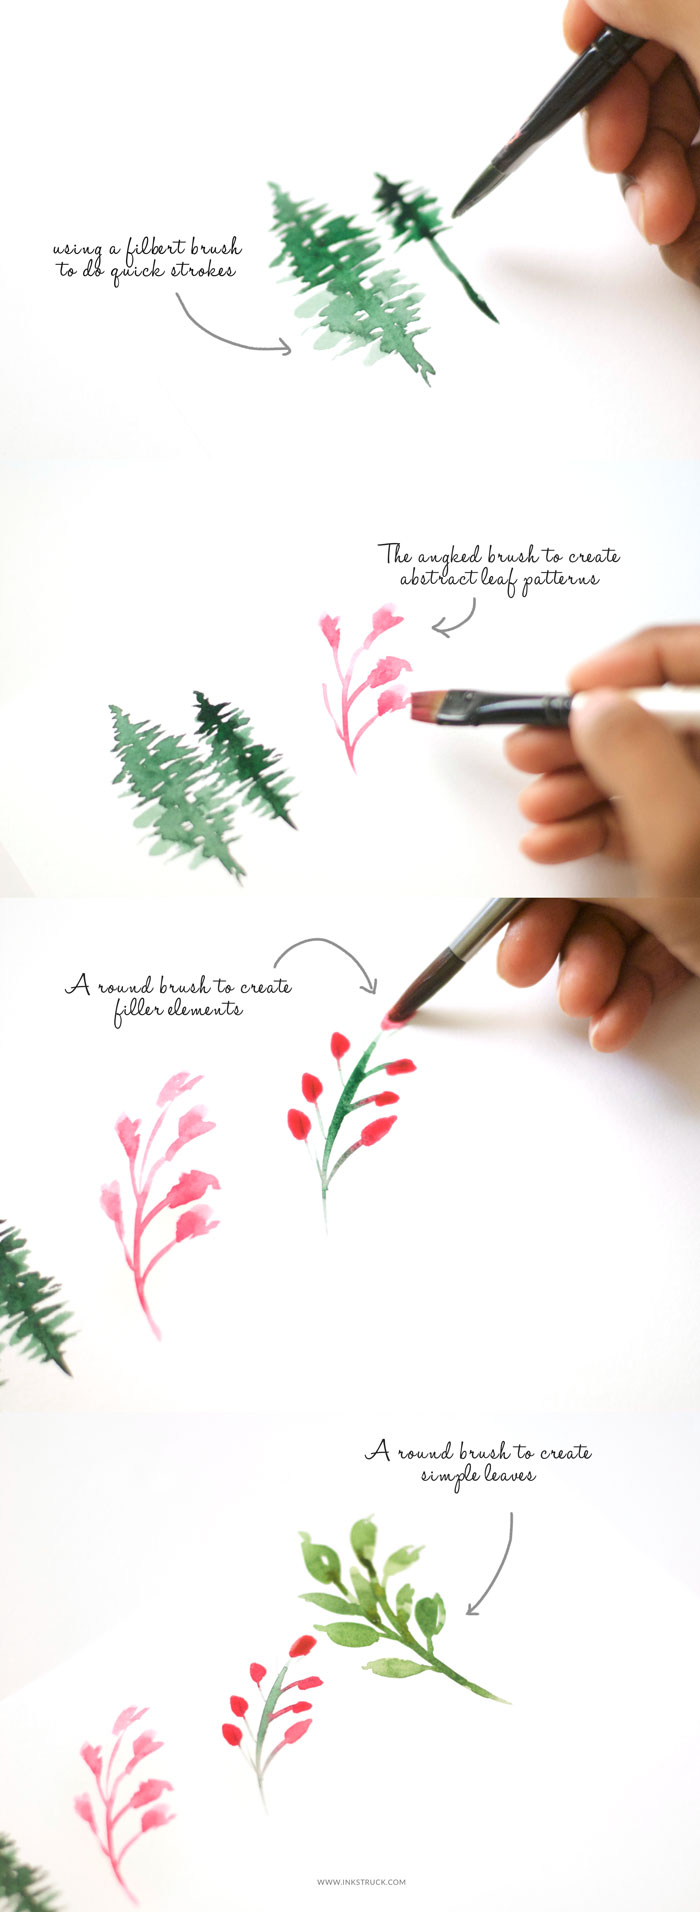 Learn what mark making in watercolors is about and how it will help you improve your skills. - Inkstruck Studio